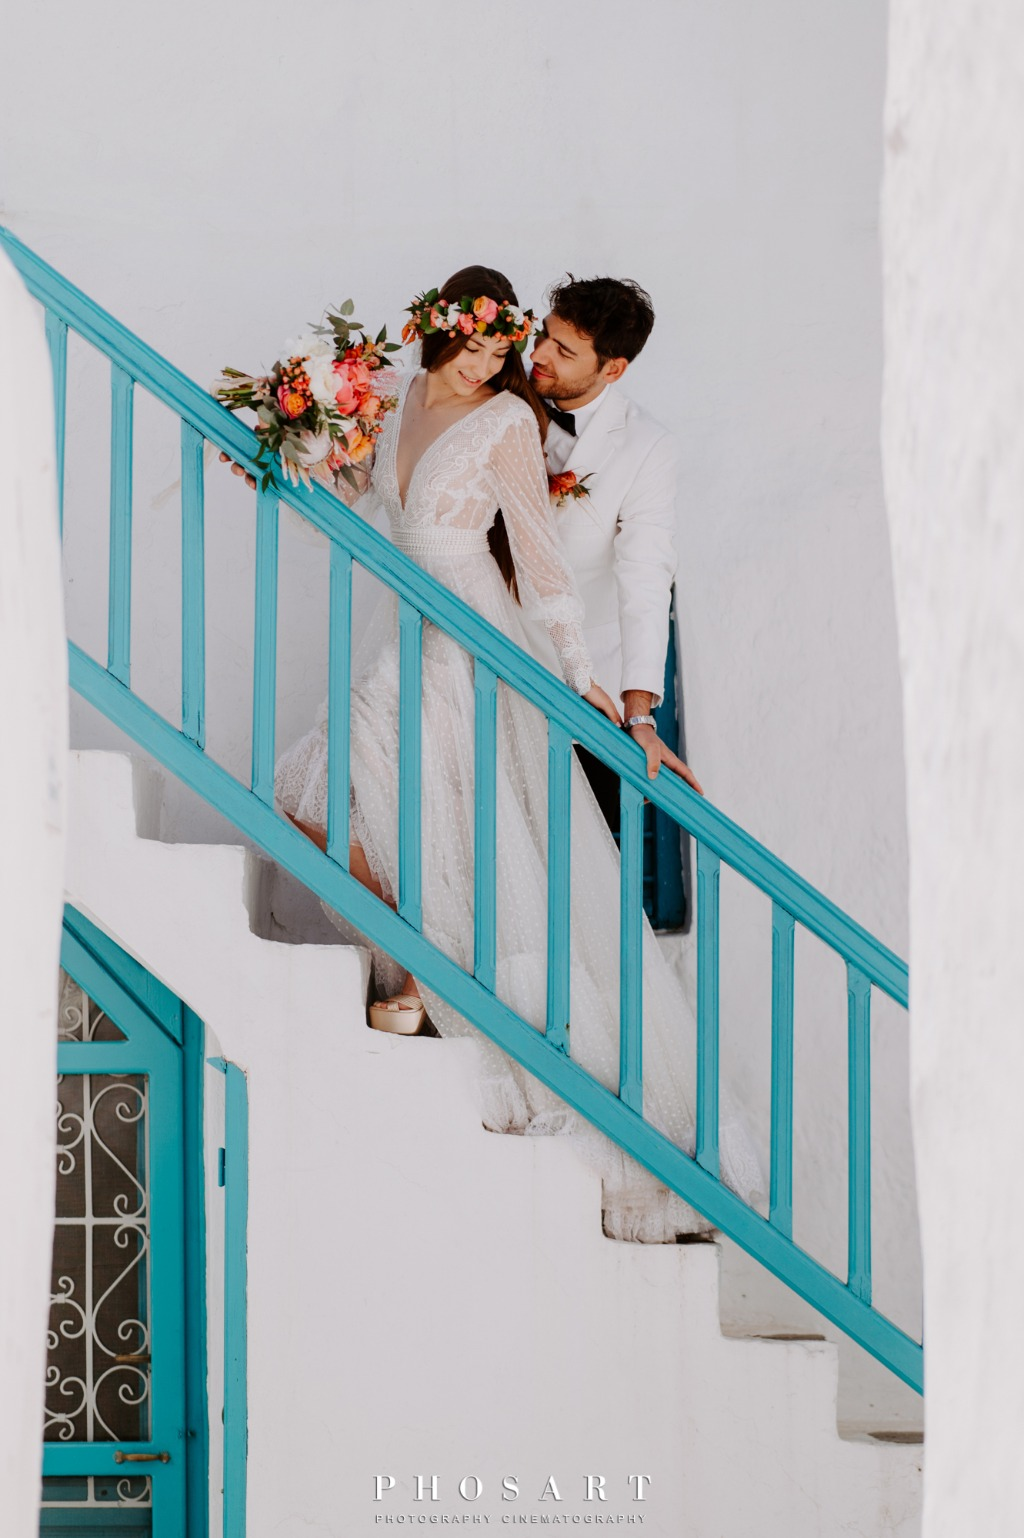 Elopement Wedding in Mykonos! After wedding photoshooting.